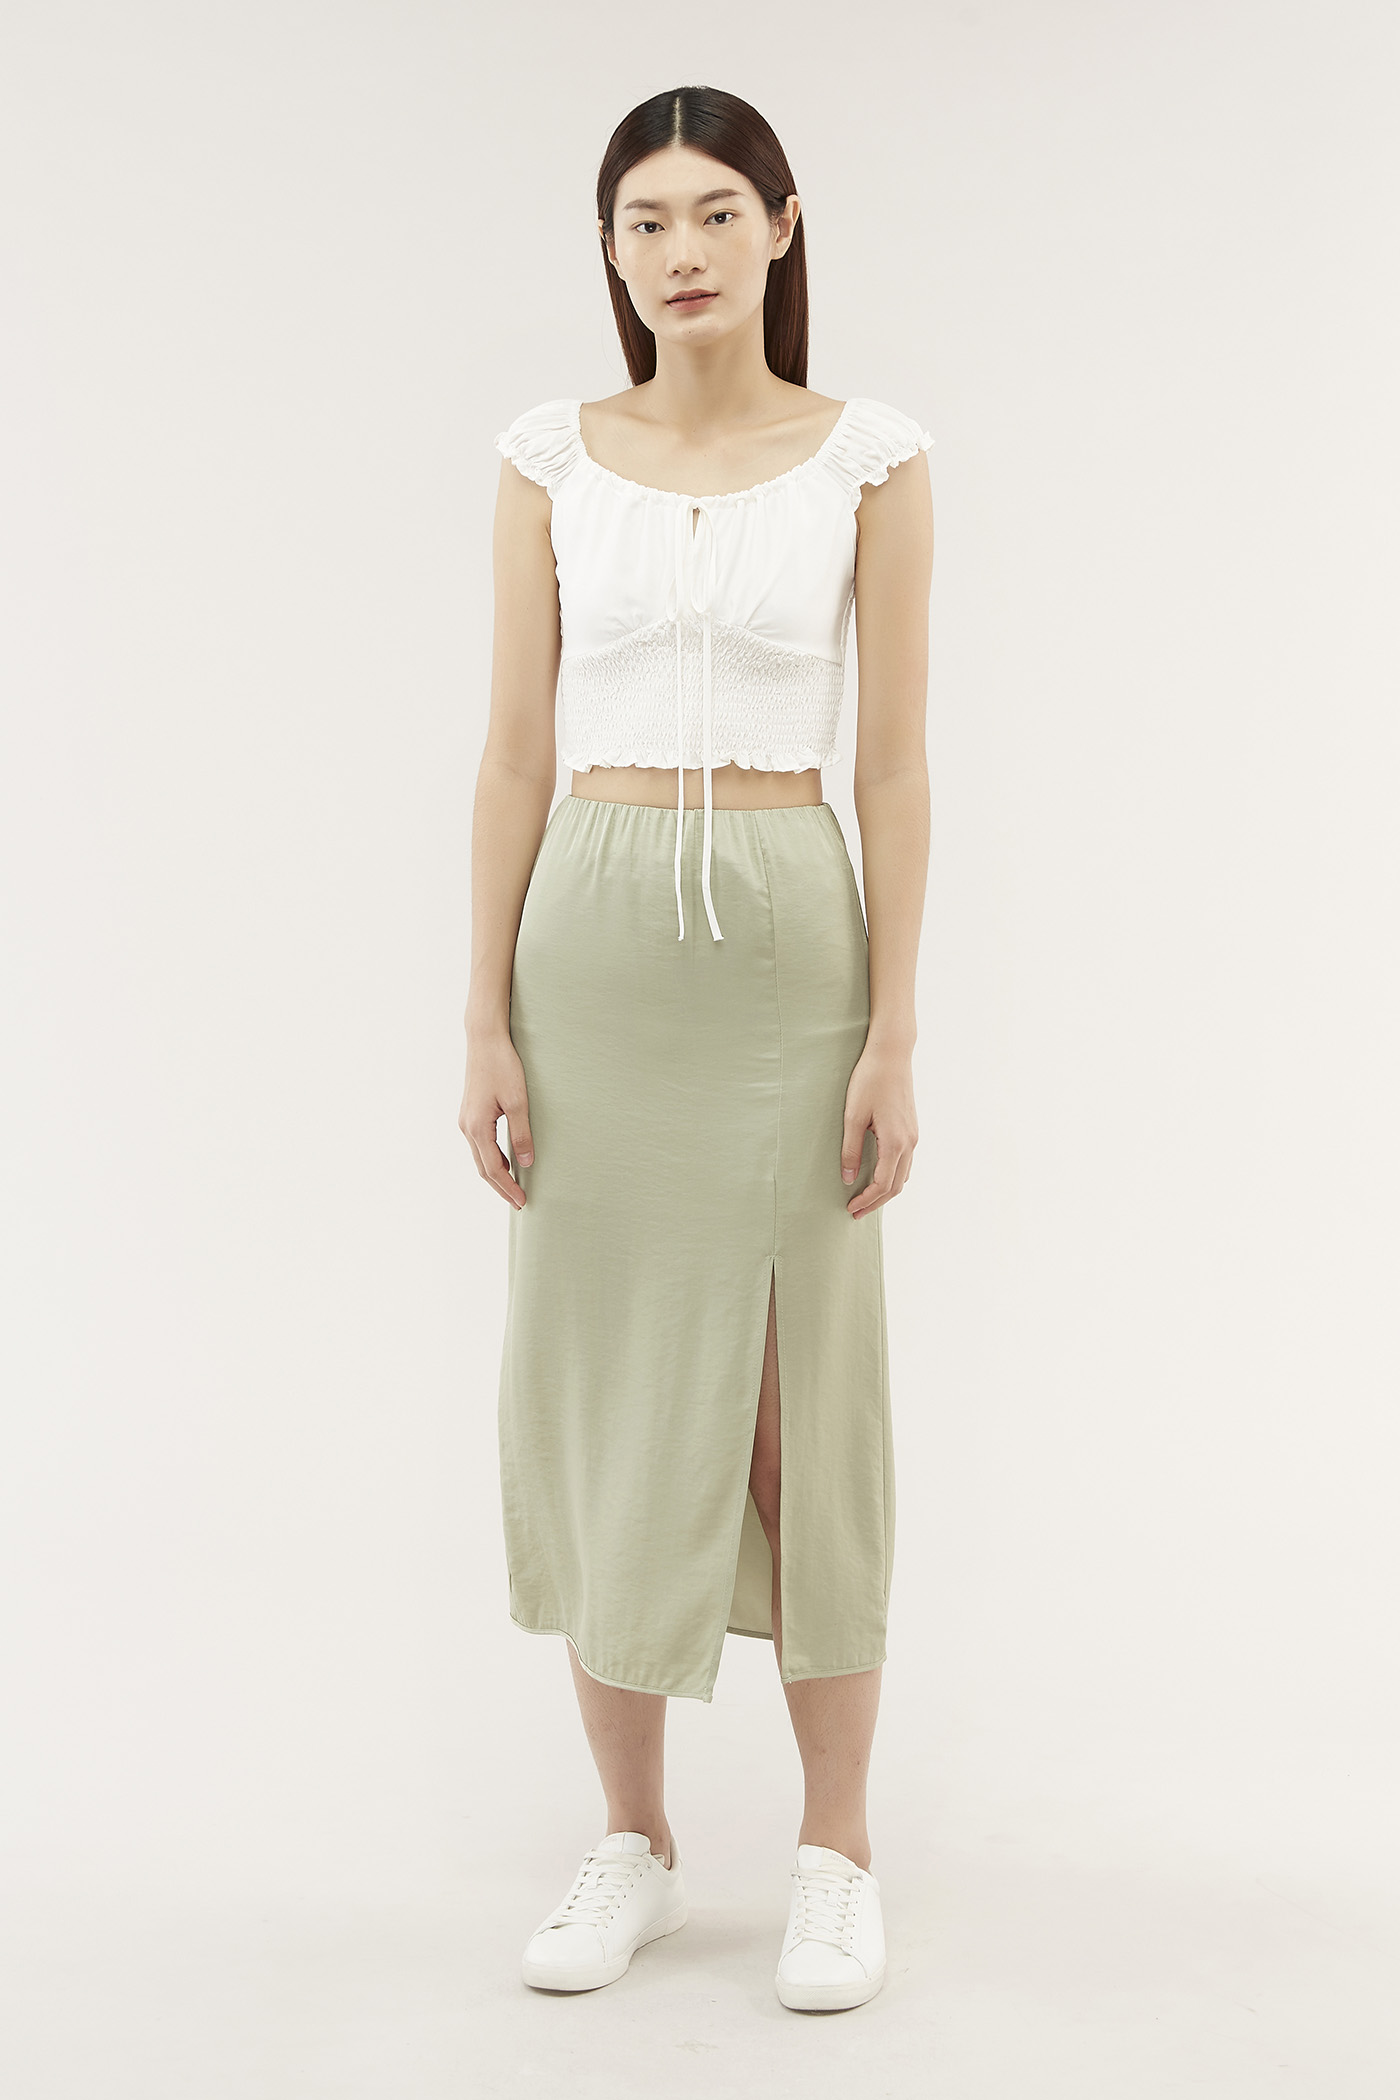 Elnora Satin Midi Skirt